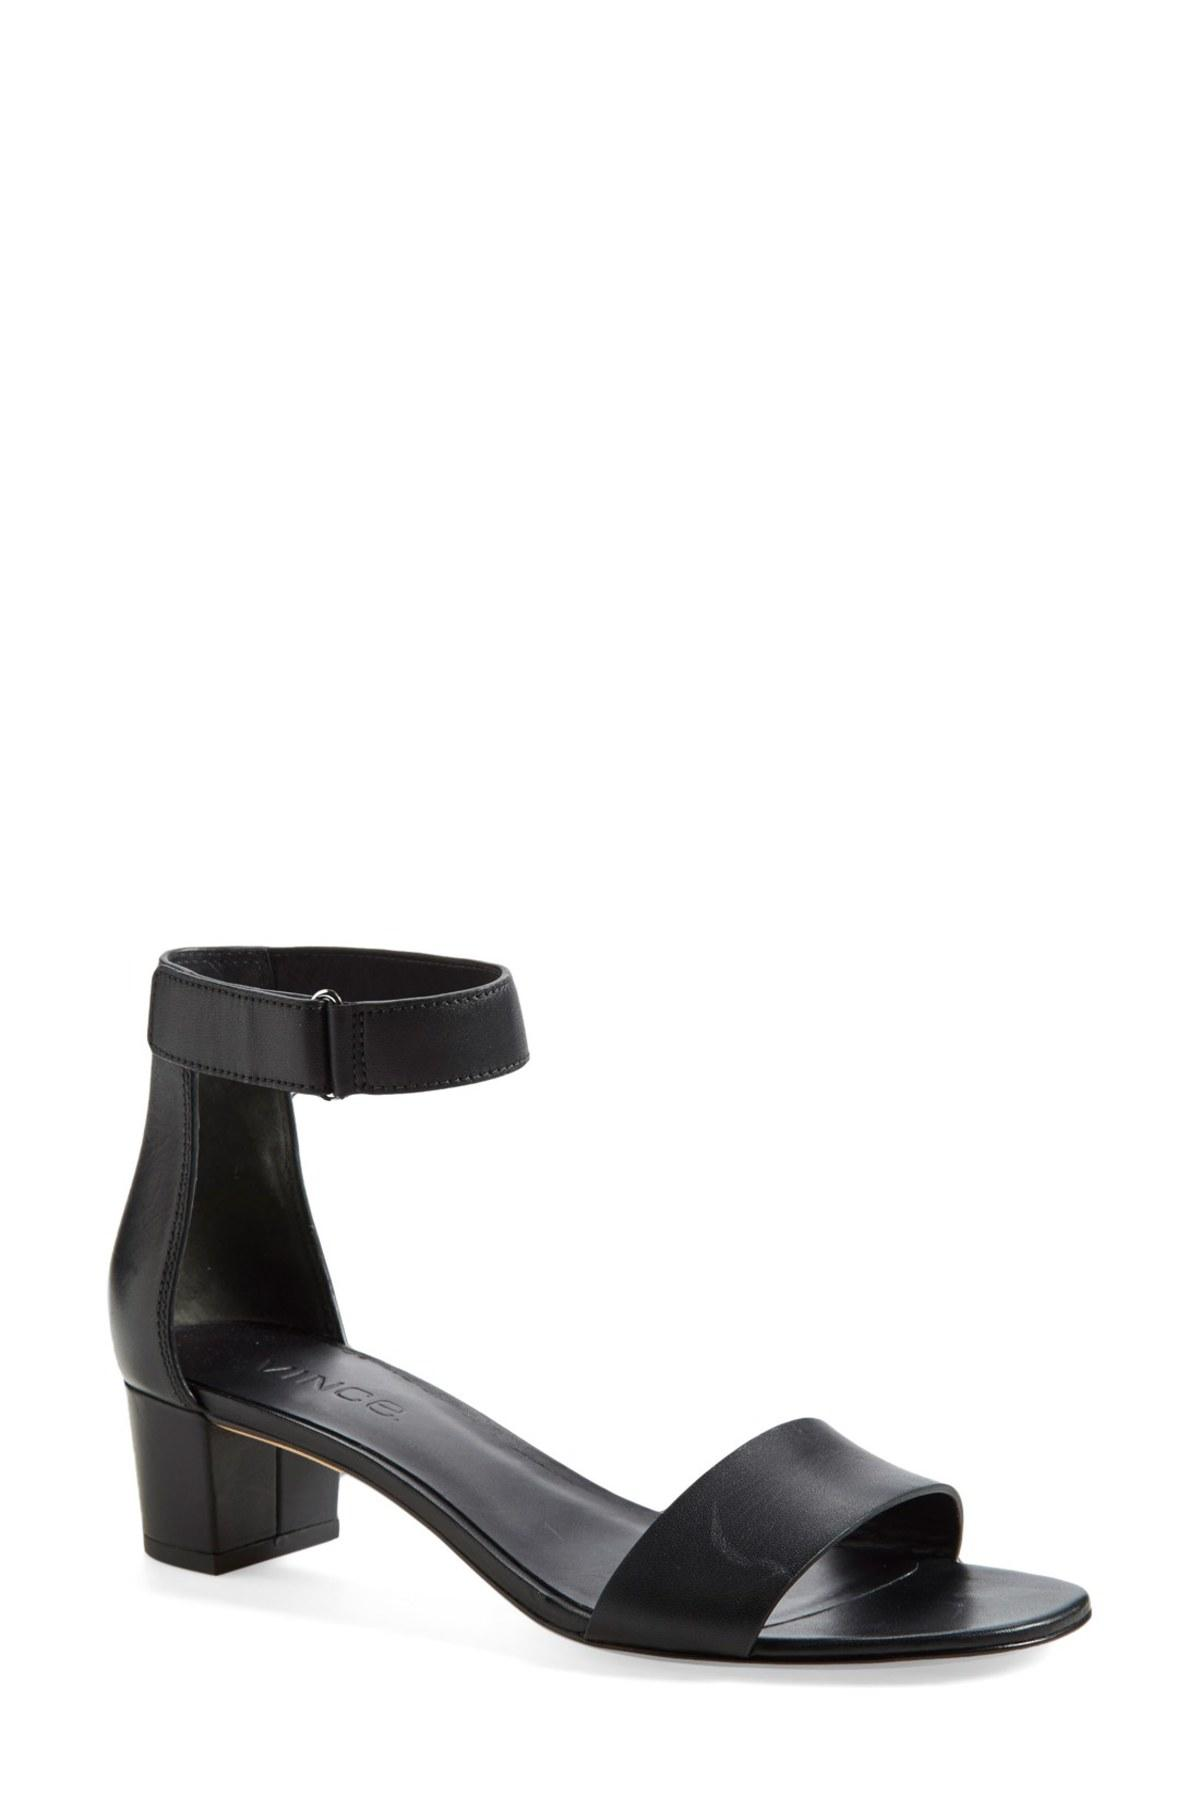 Vince Rita Croc Embossed Block Heel Sandal In Black Lyst